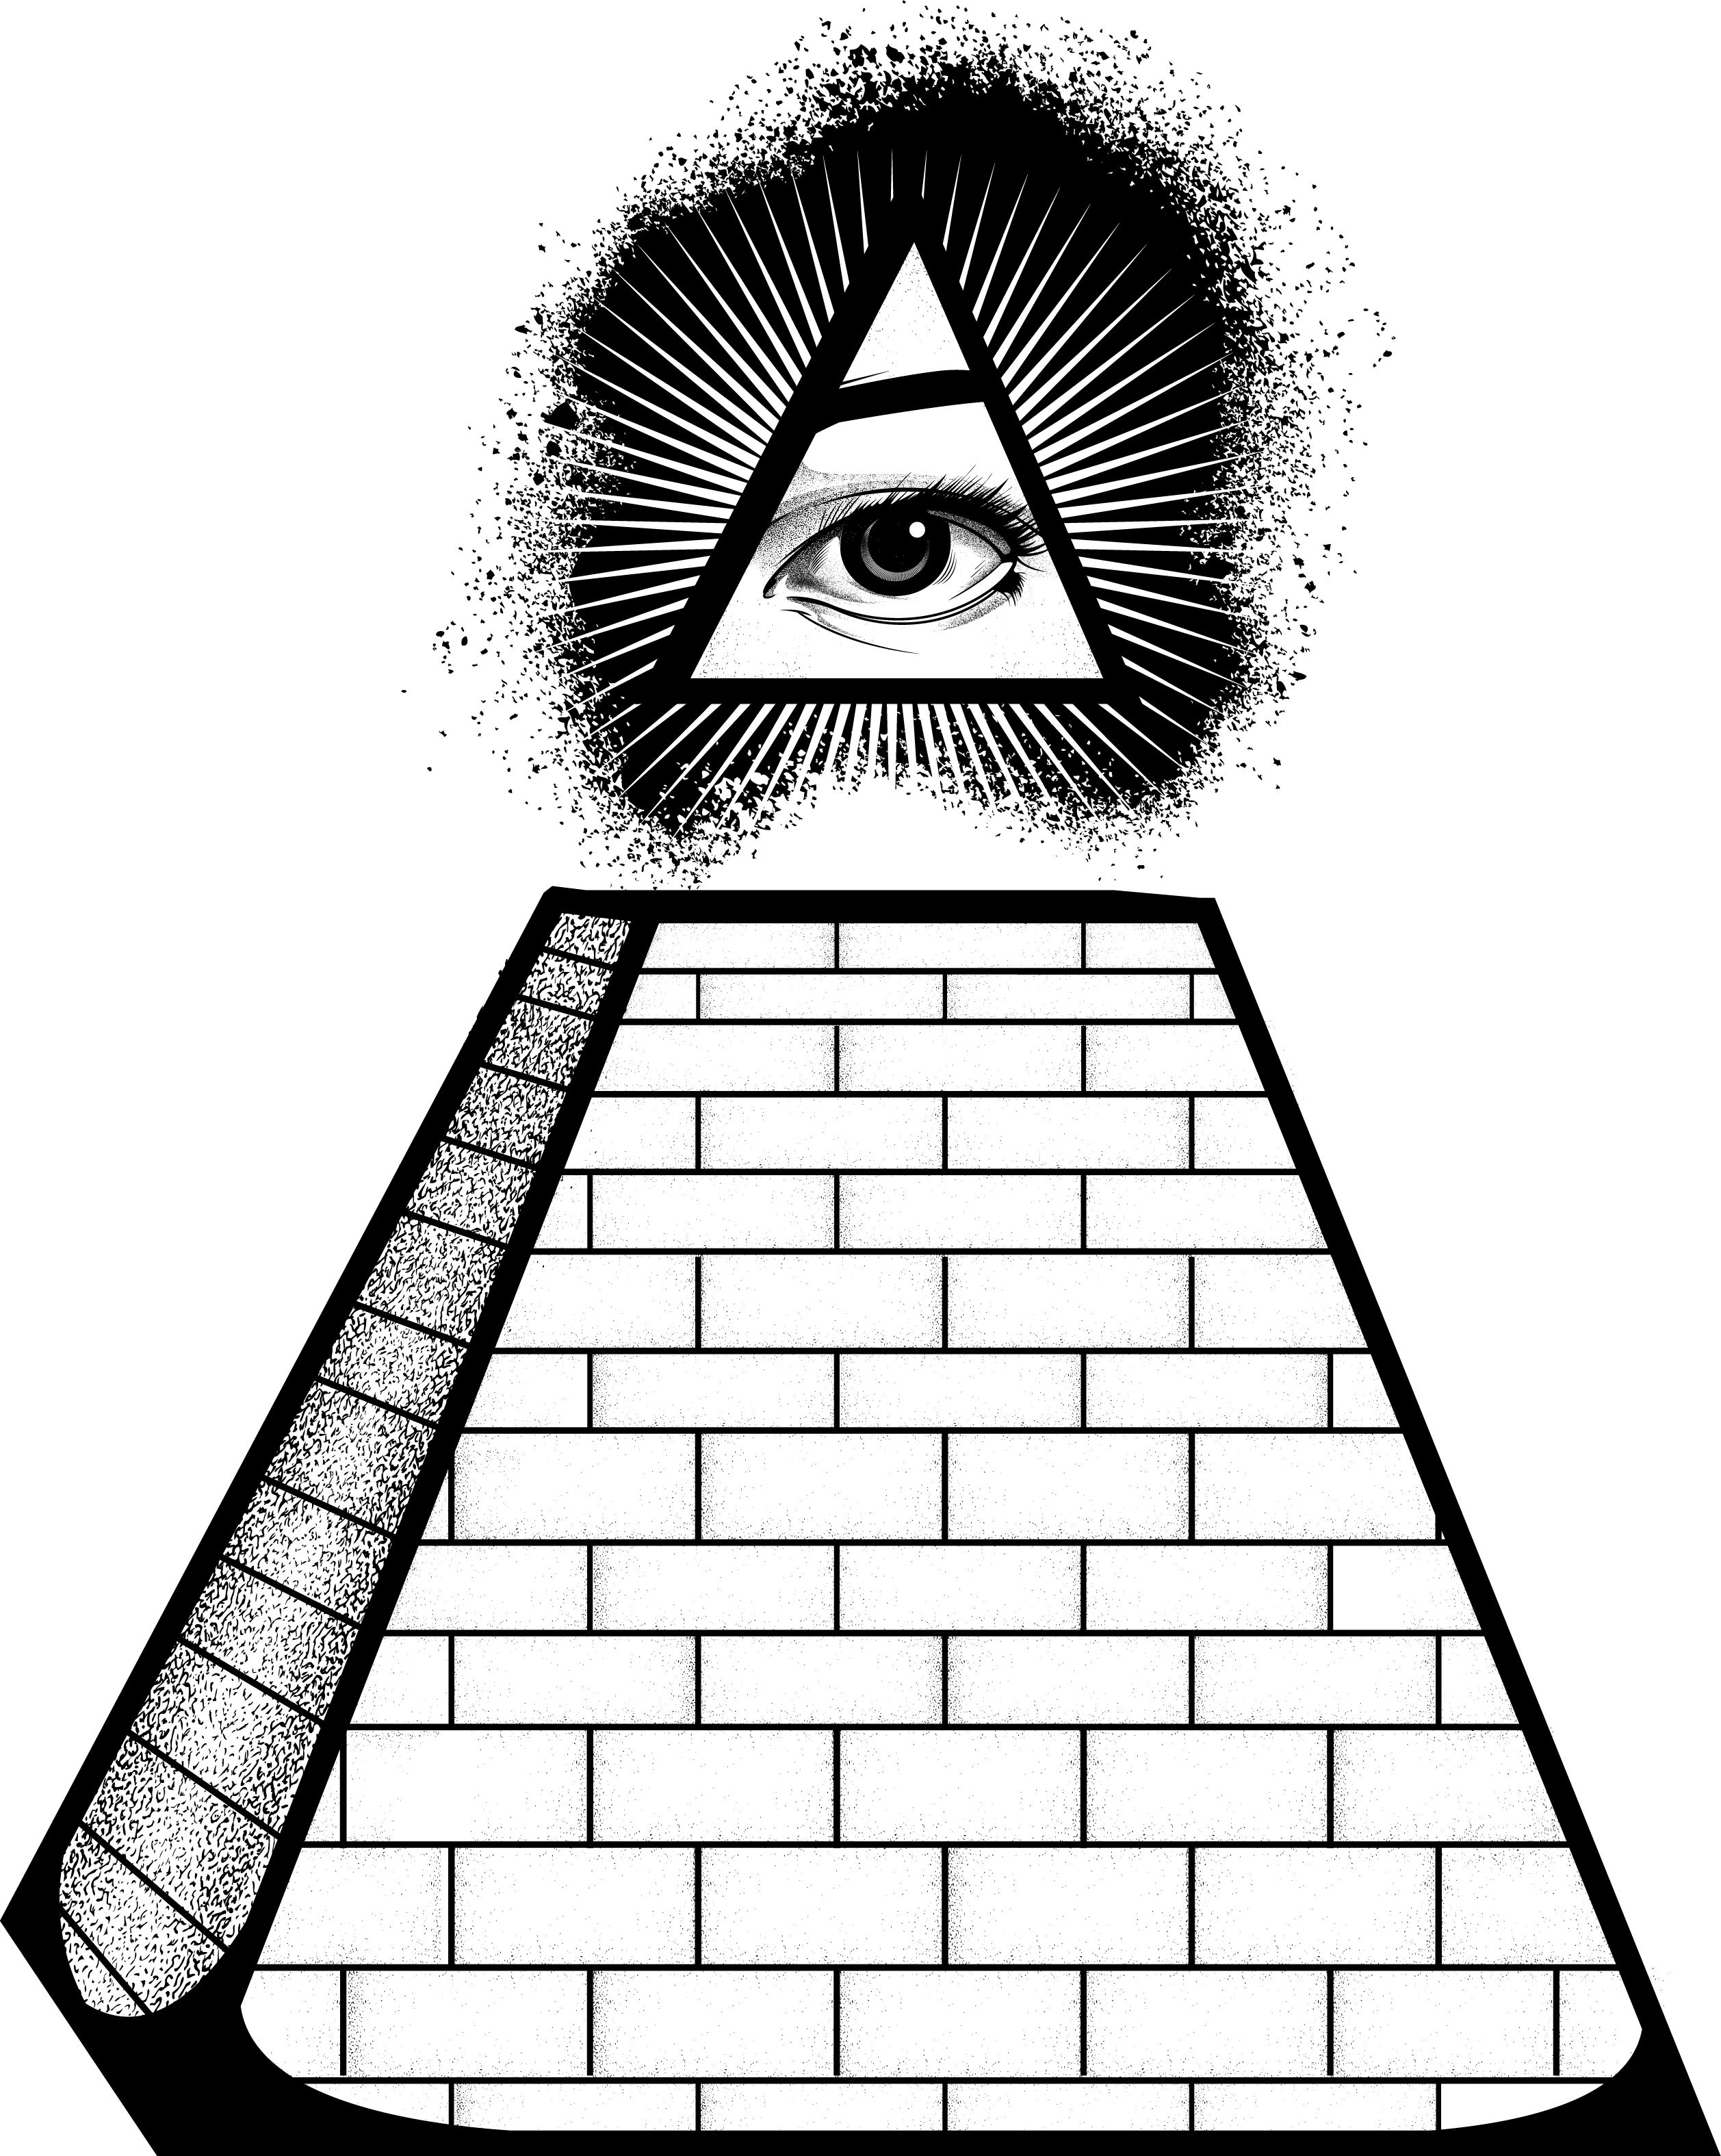 Egyptian Pyramid And Eye Illuminati Transparent Picture image #47711